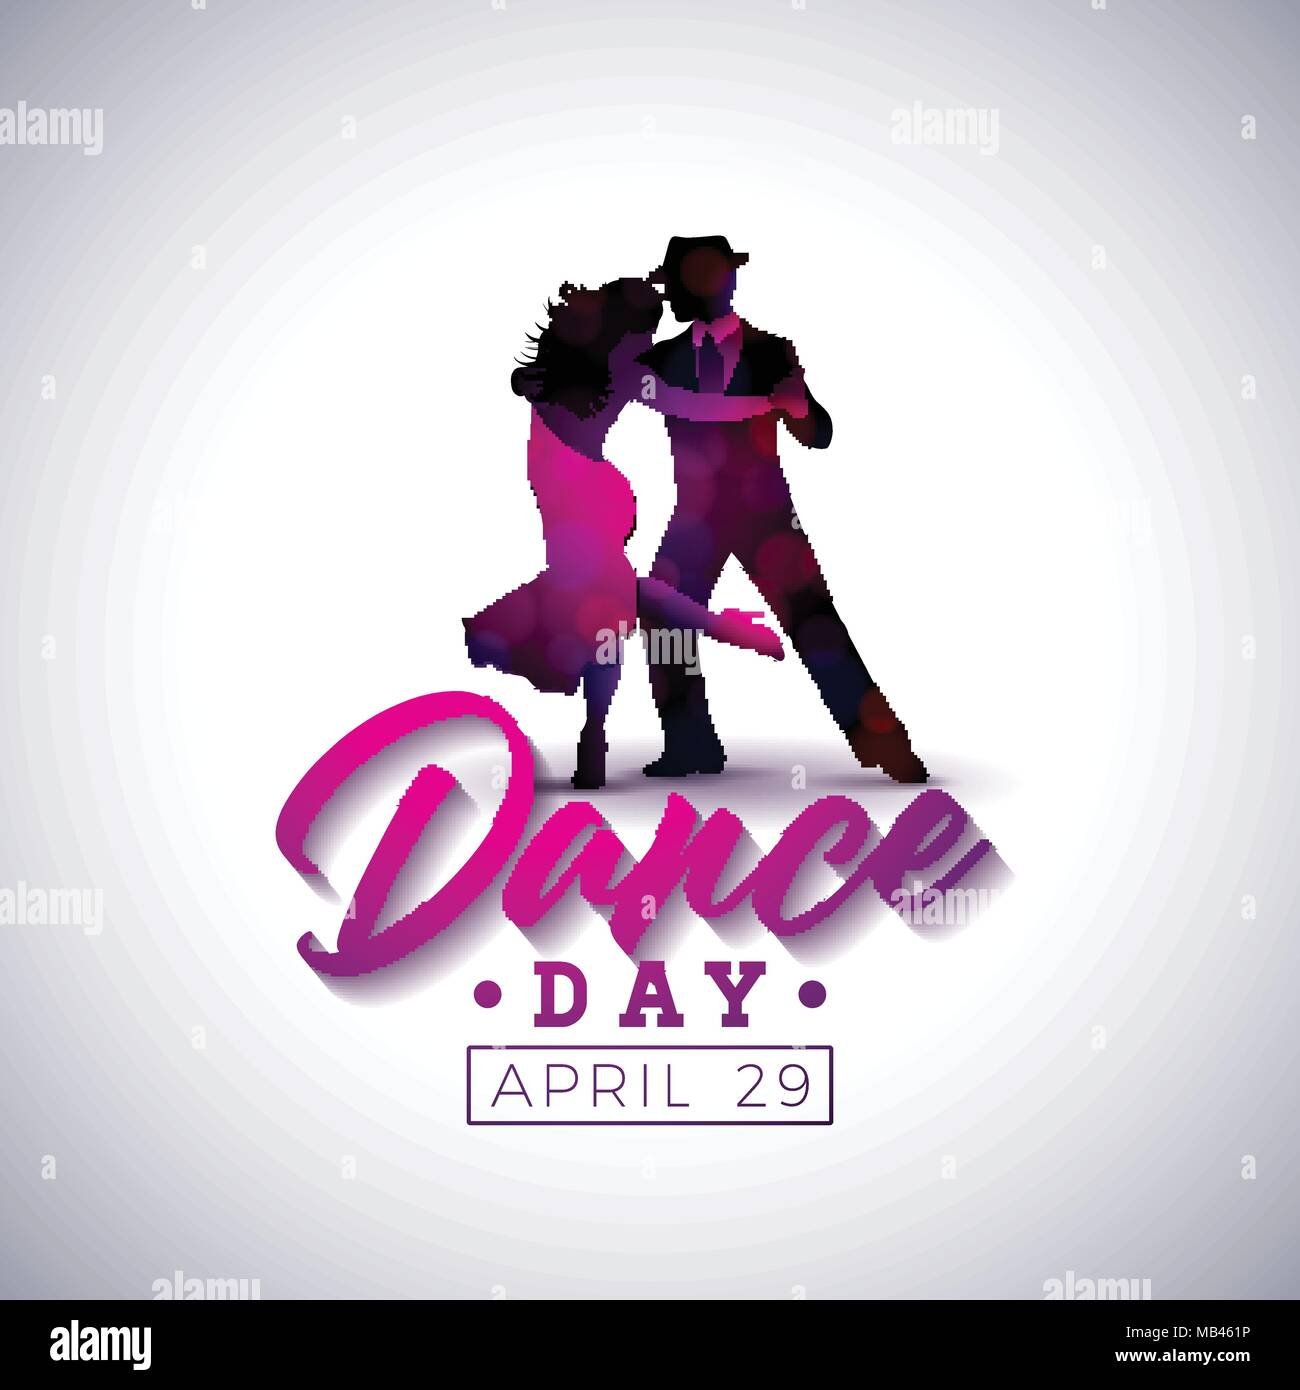 International Dance Day Vector Illustration With Tango Dancing Couple On White Background Design Template For Banner Flyer Invitation Brochure Poster Or Greeting Card Stock Vector Image Art Alamy